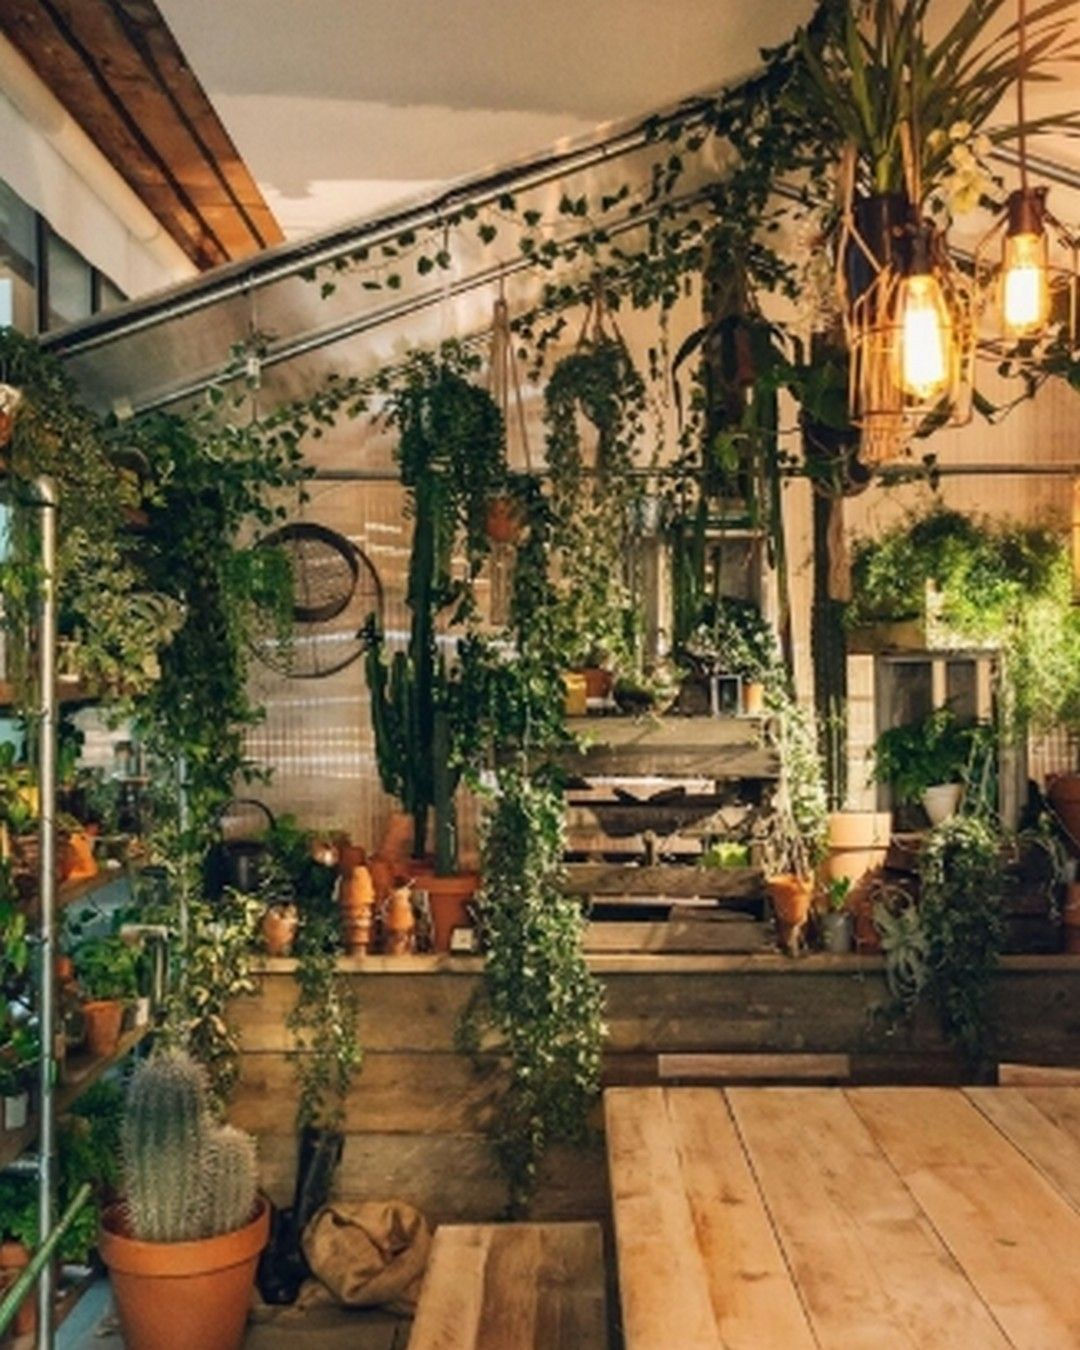 6 Indoor Garden Model Ideas For Tiny Minimalist Homes In 2020 Room With Plants Indoor Jungle Jungle House